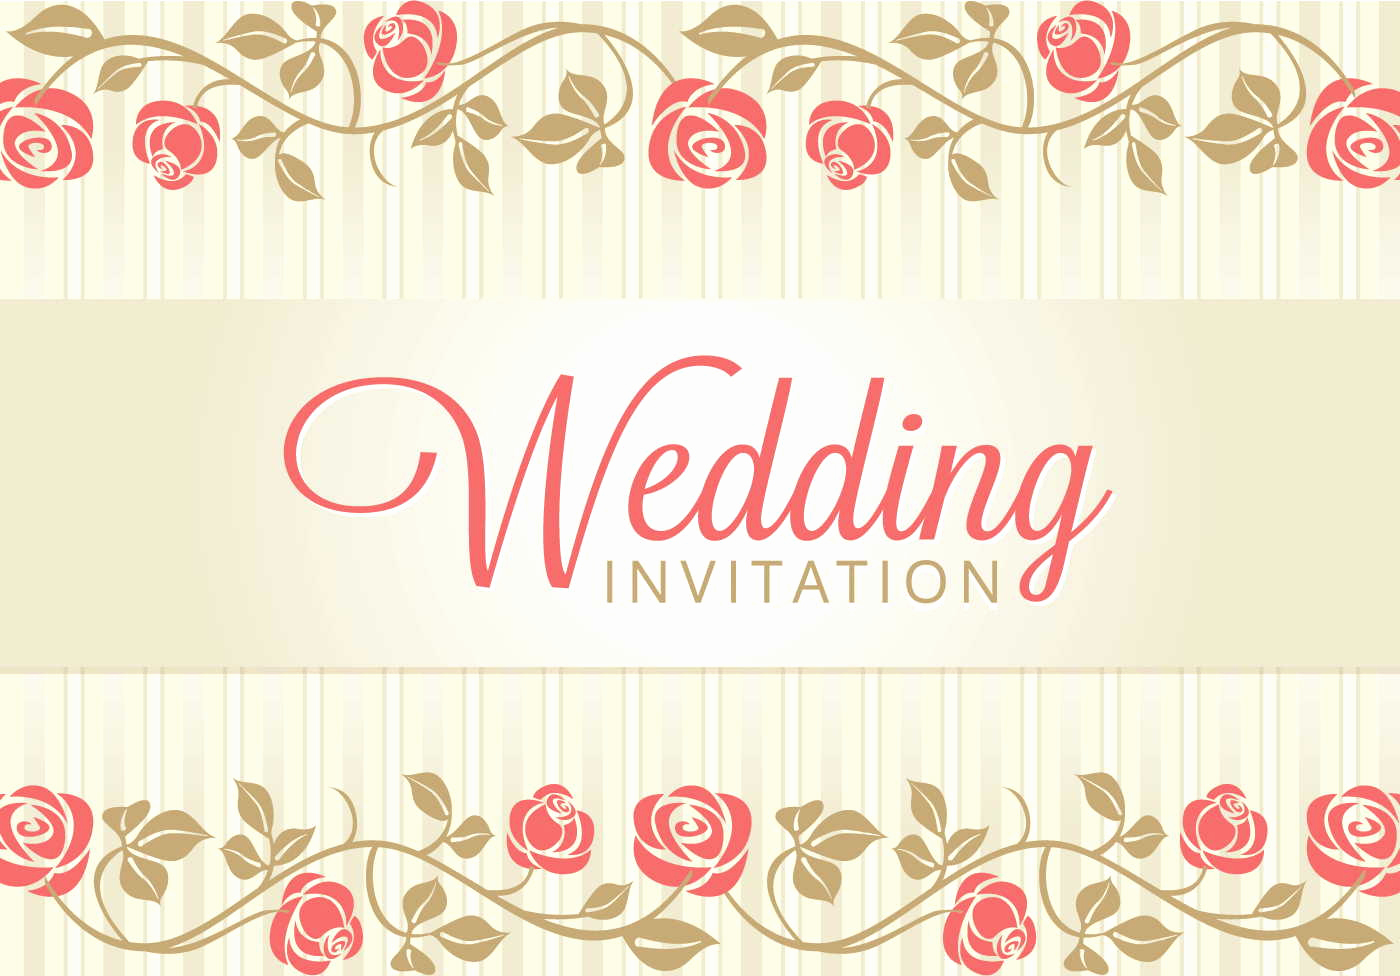 Invitation Card for Weddings Best Of Vintage Wedding Backgrounds